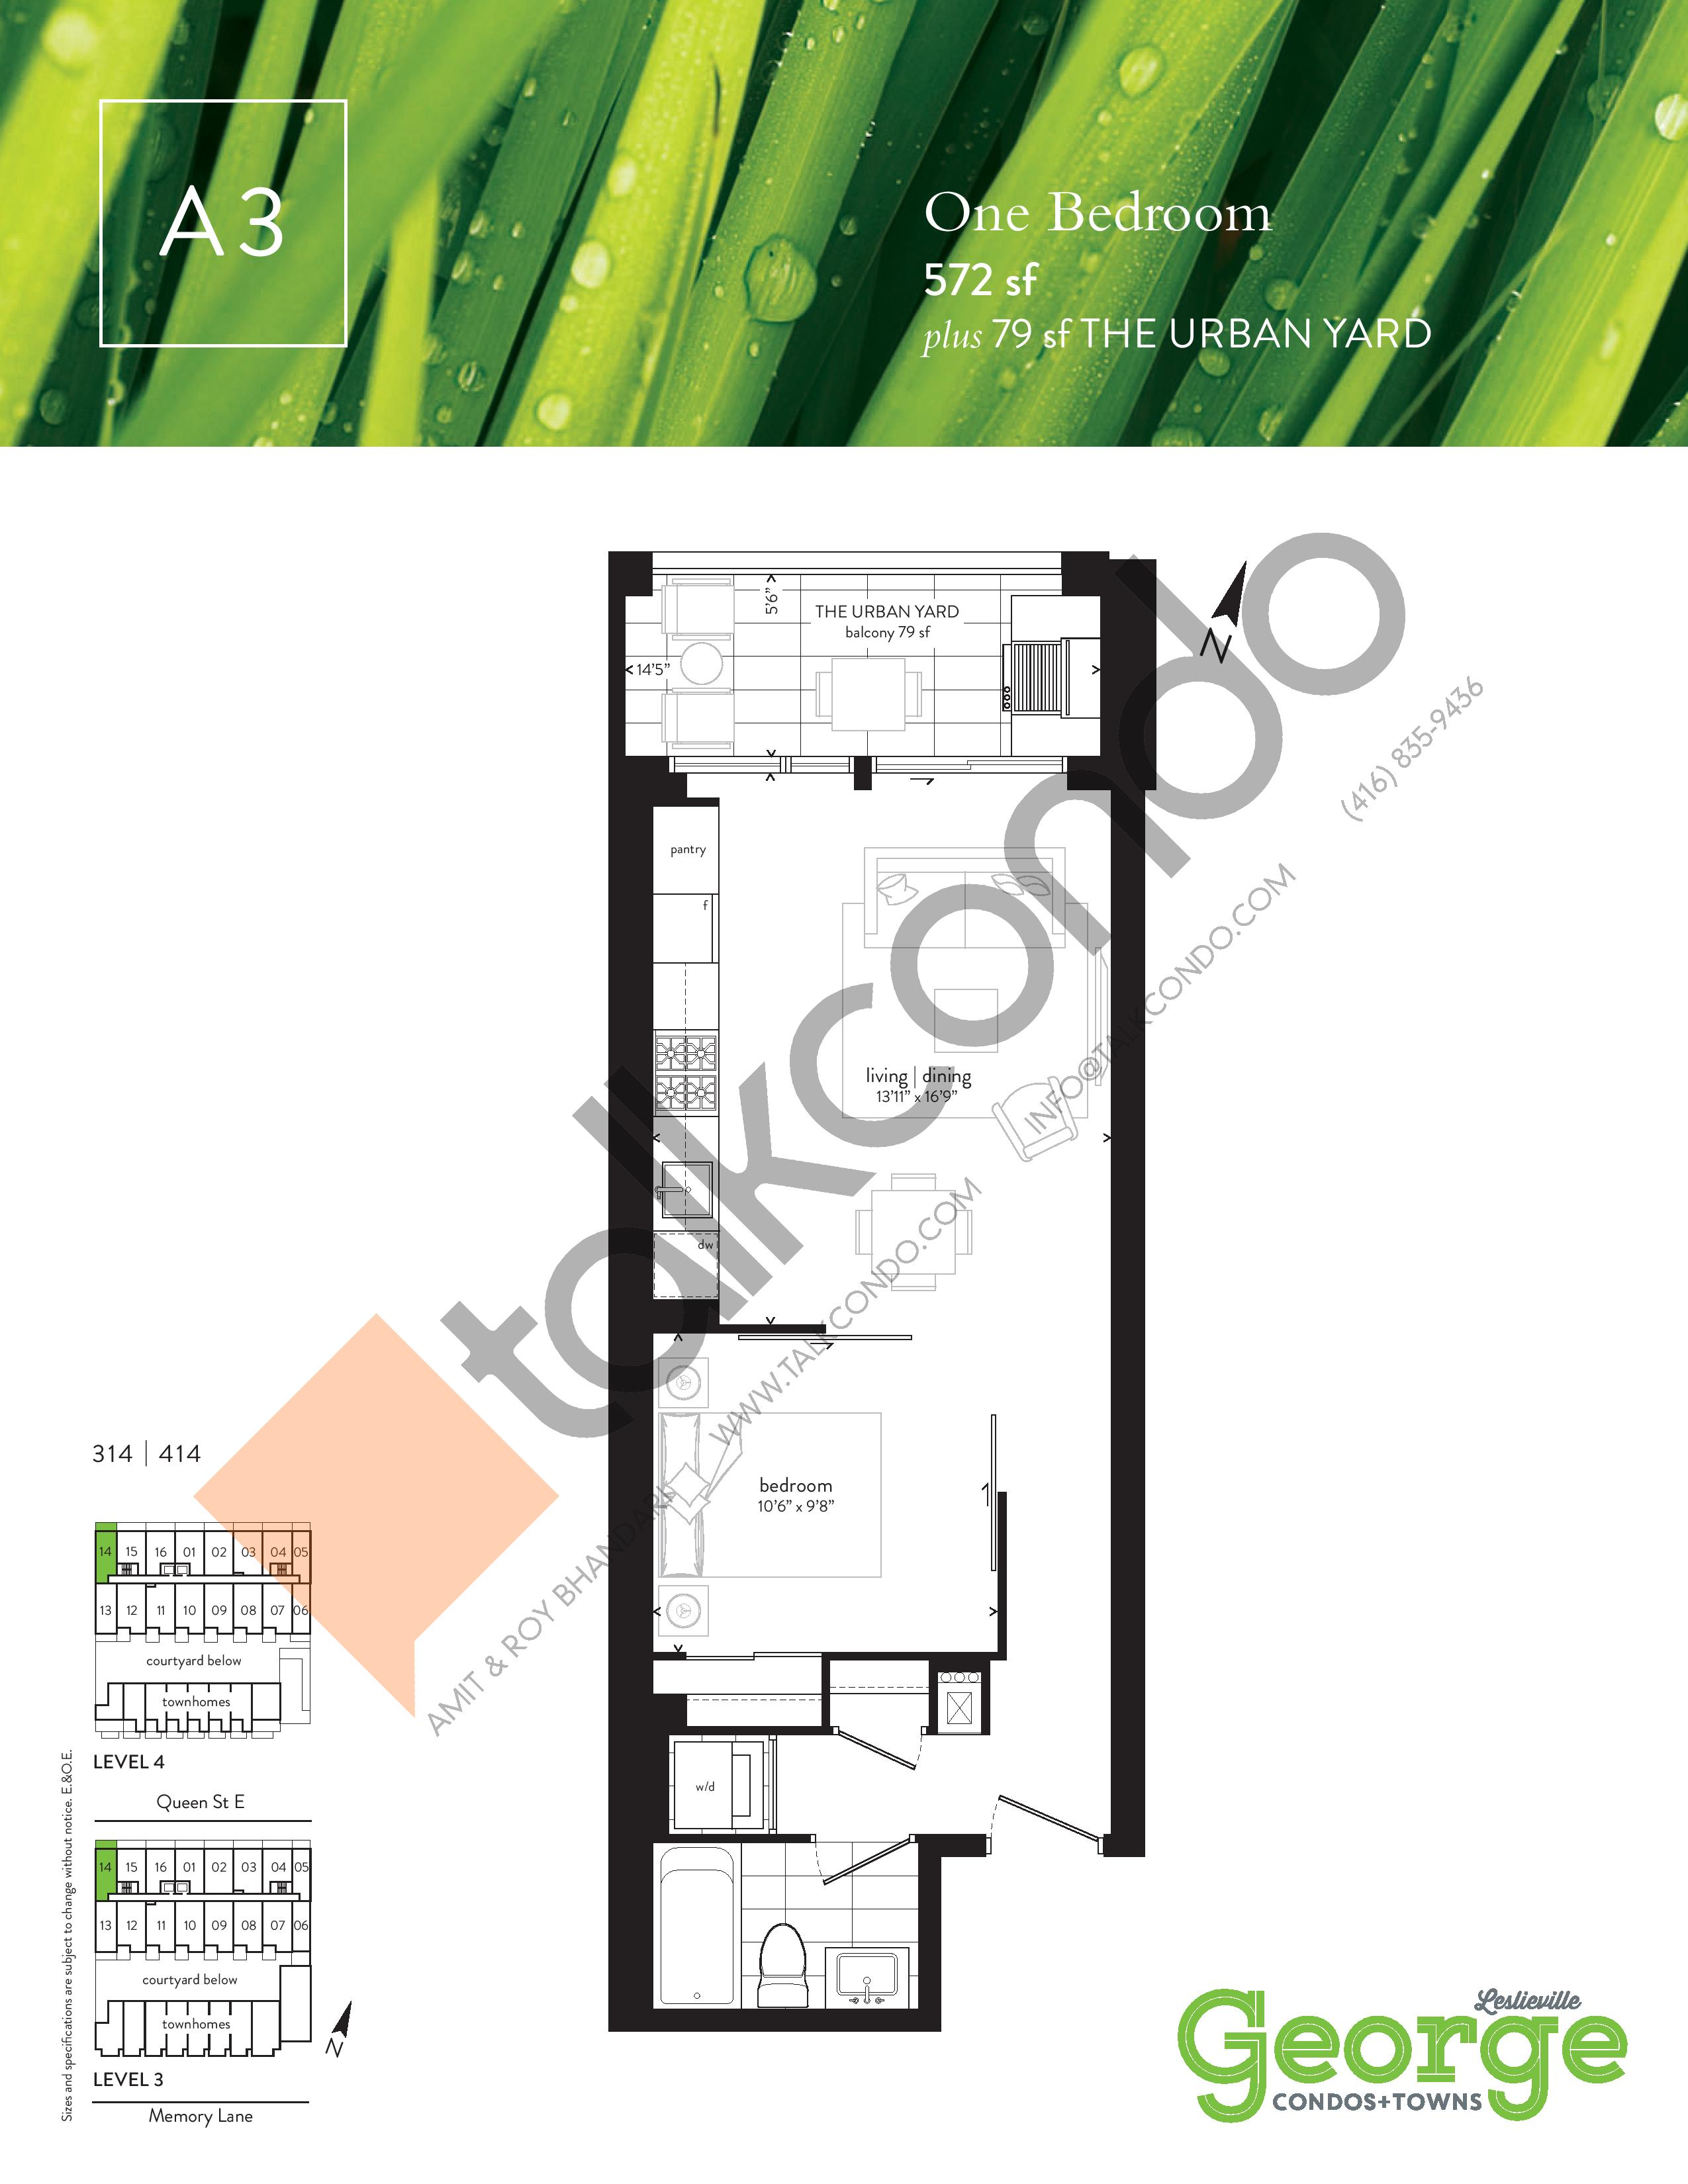 A3 Floor Plan at George Condos & Towns - 572 sq.ft